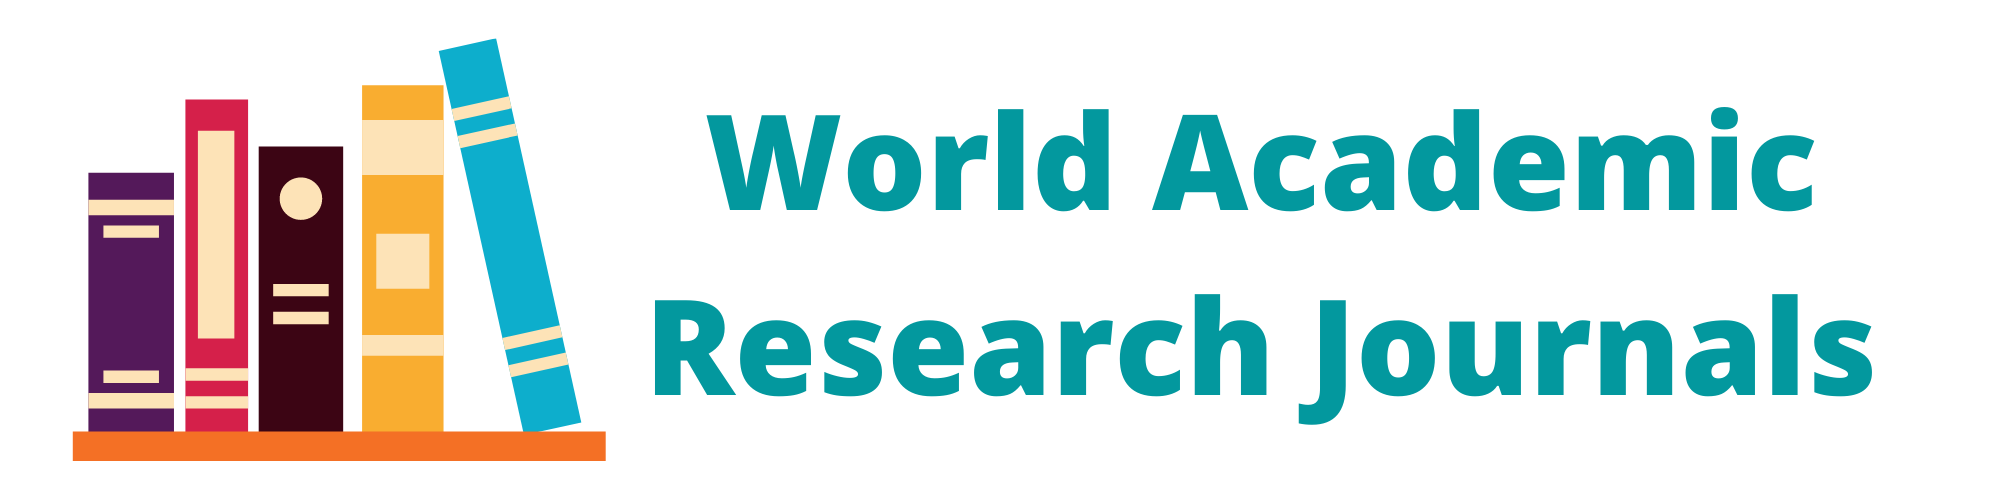 World Academic Research Journals